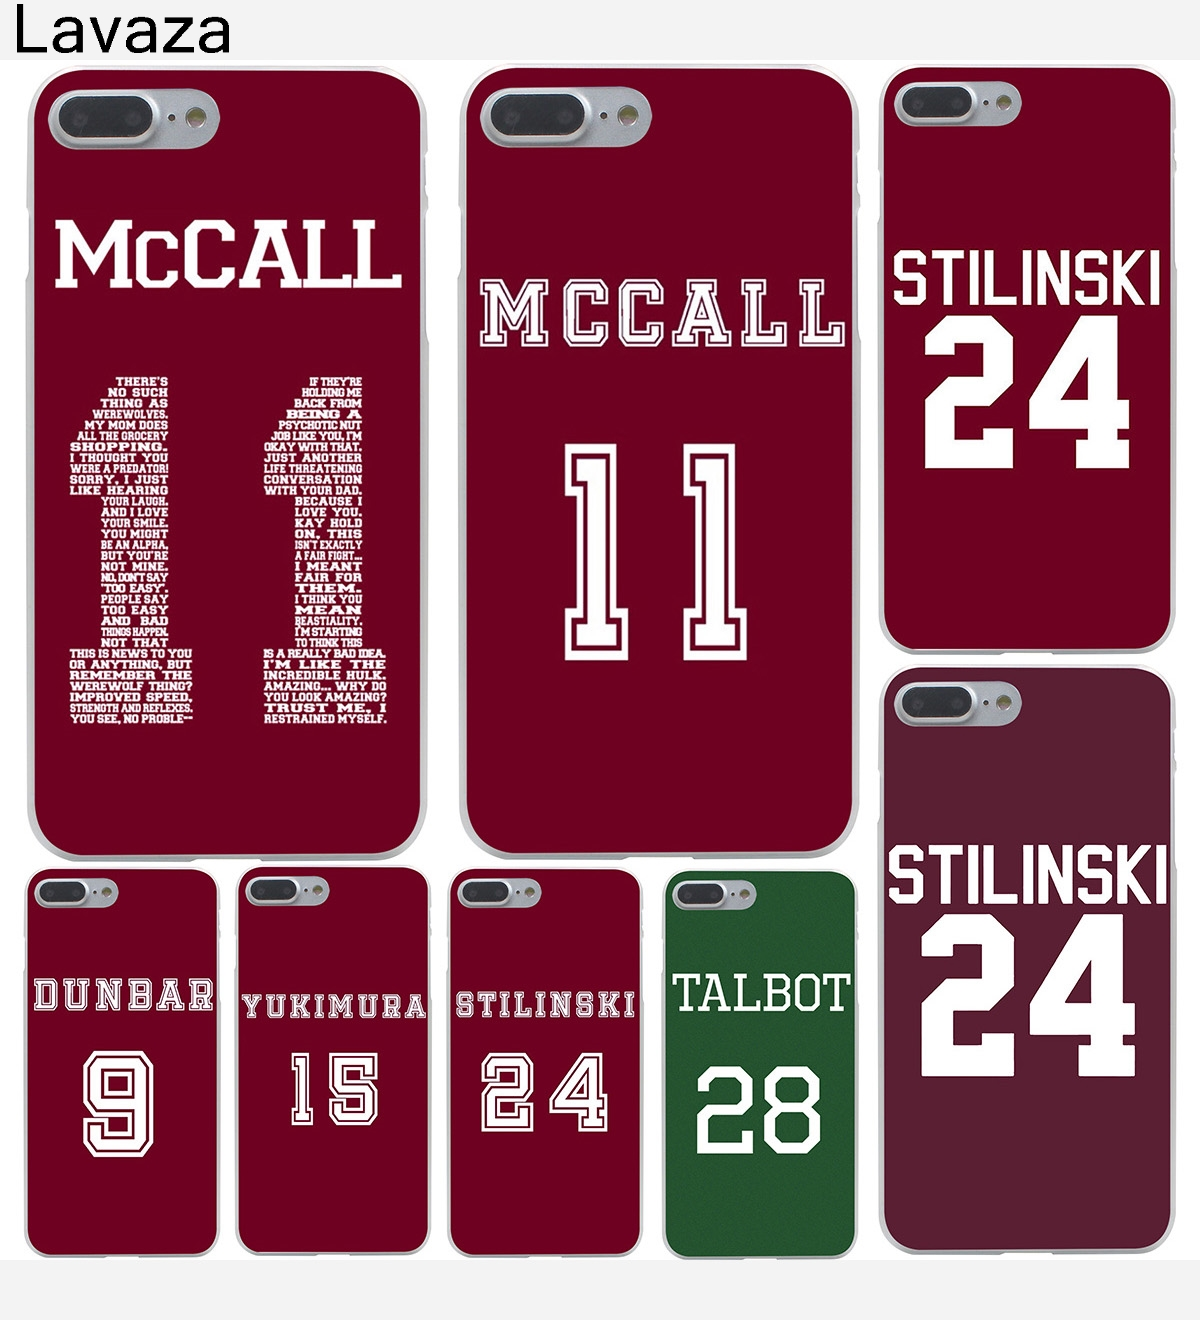 Lavaza Teen Wolf Mccall 11 Words Hard Case Shell for Apple iPhone 6 6s 7 8 Plus 4 4S 5 5S SE 5C for iPhone XS Max XR Cases